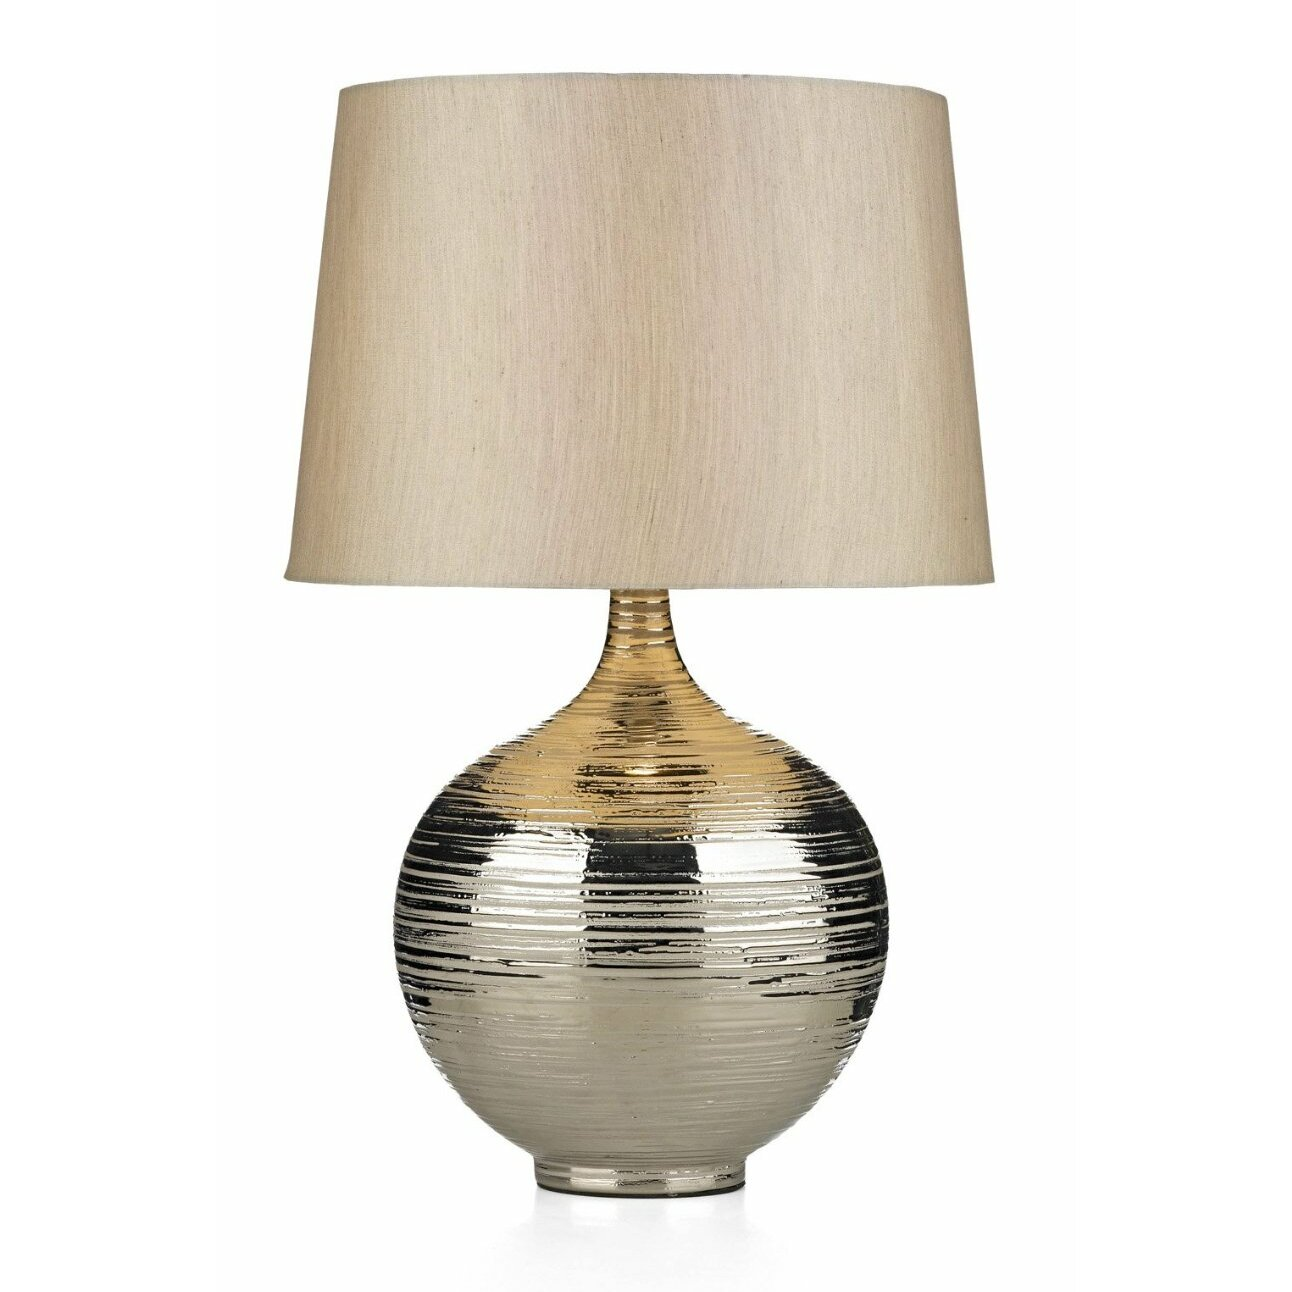 Dar Lighting Gustav Table Lamp amp Reviews Wayfair UK : Dar Lighting Gustav Table Lamp from www.wayfair.co.uk size 1292 x 1292 jpeg 182kB